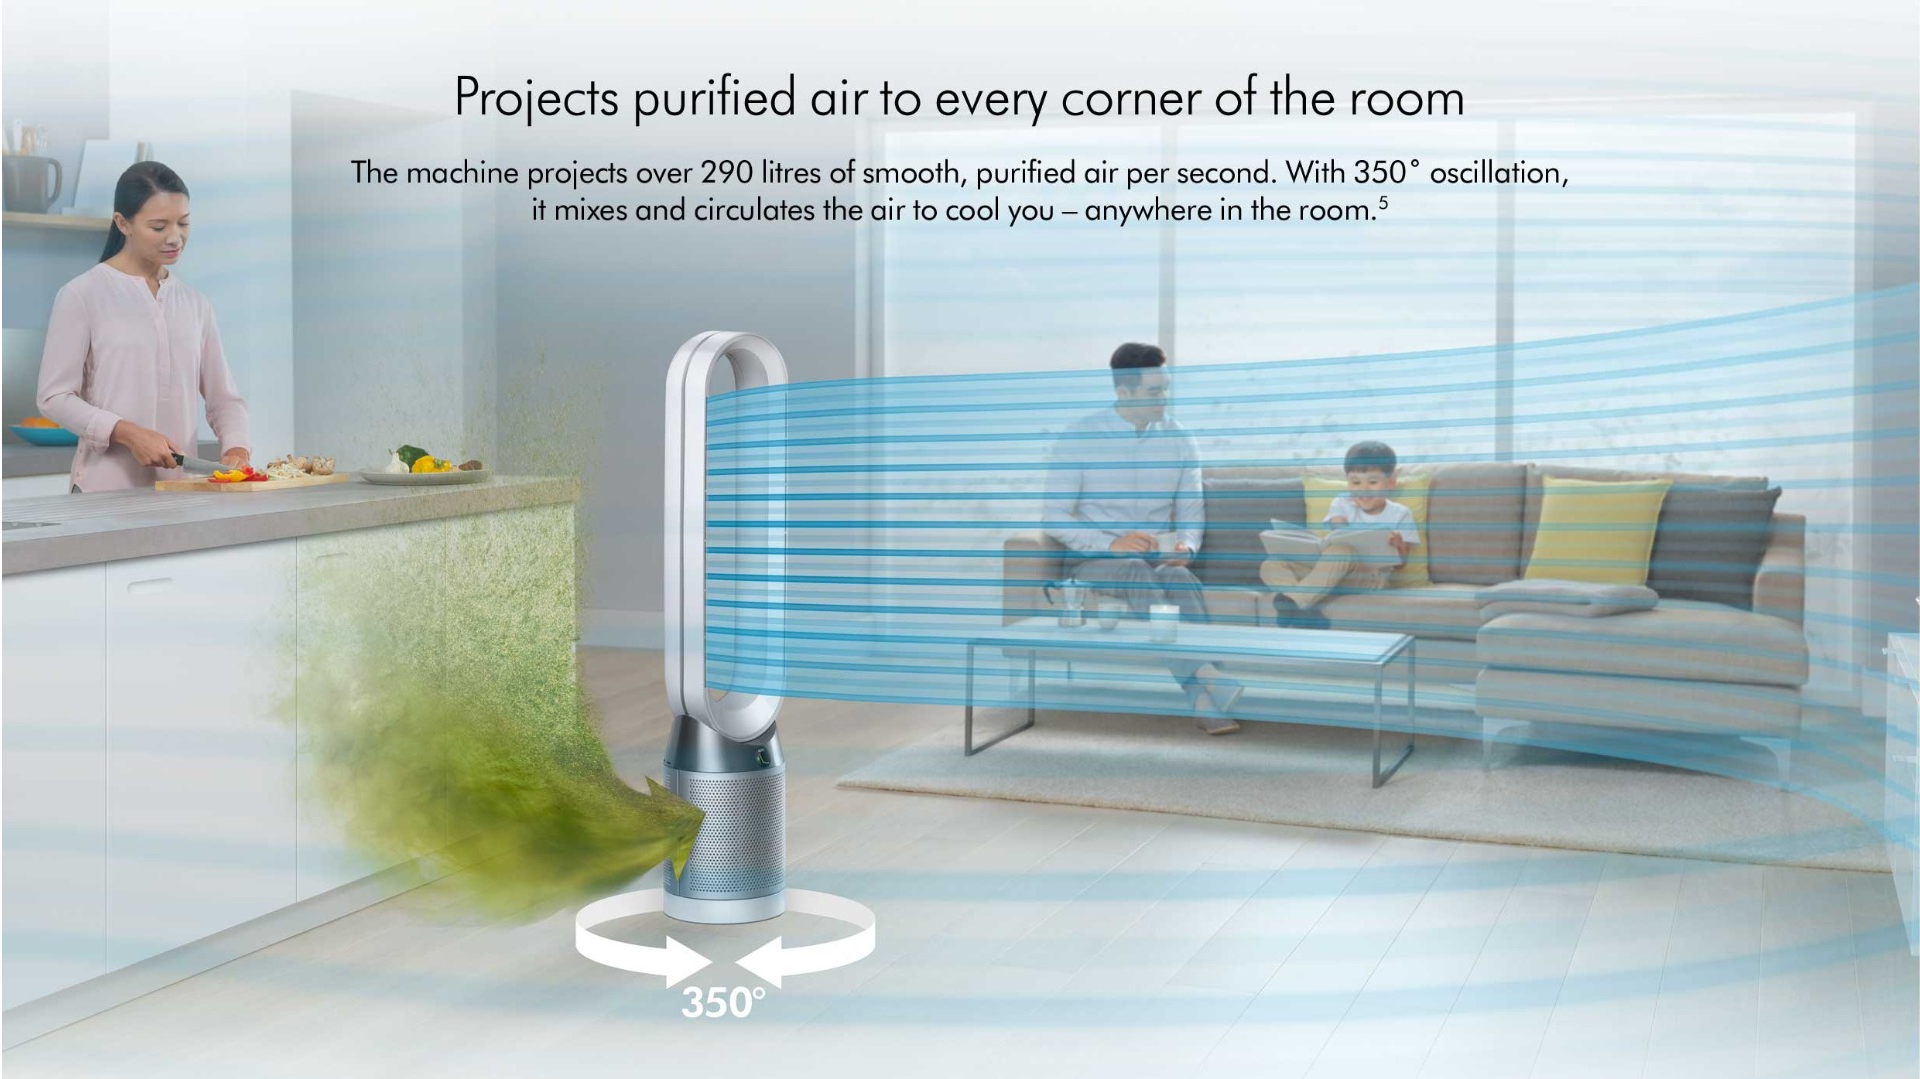 Projects purified air to the corner of every room